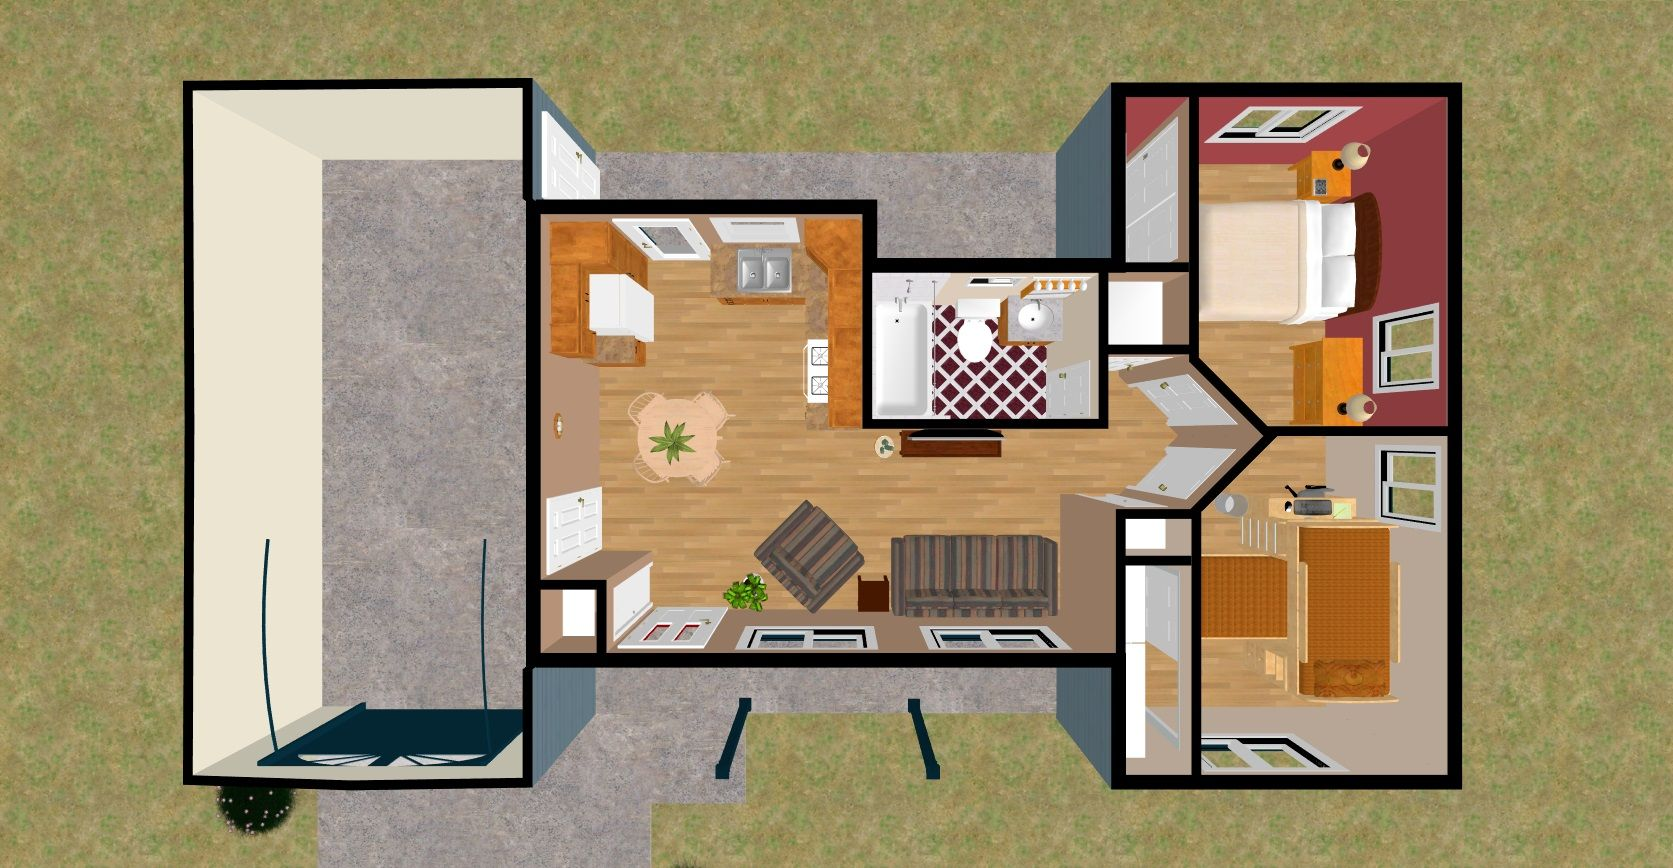 Blog cozy home plans part 2 tiny home one bedroom - Simple interior design for small house ...